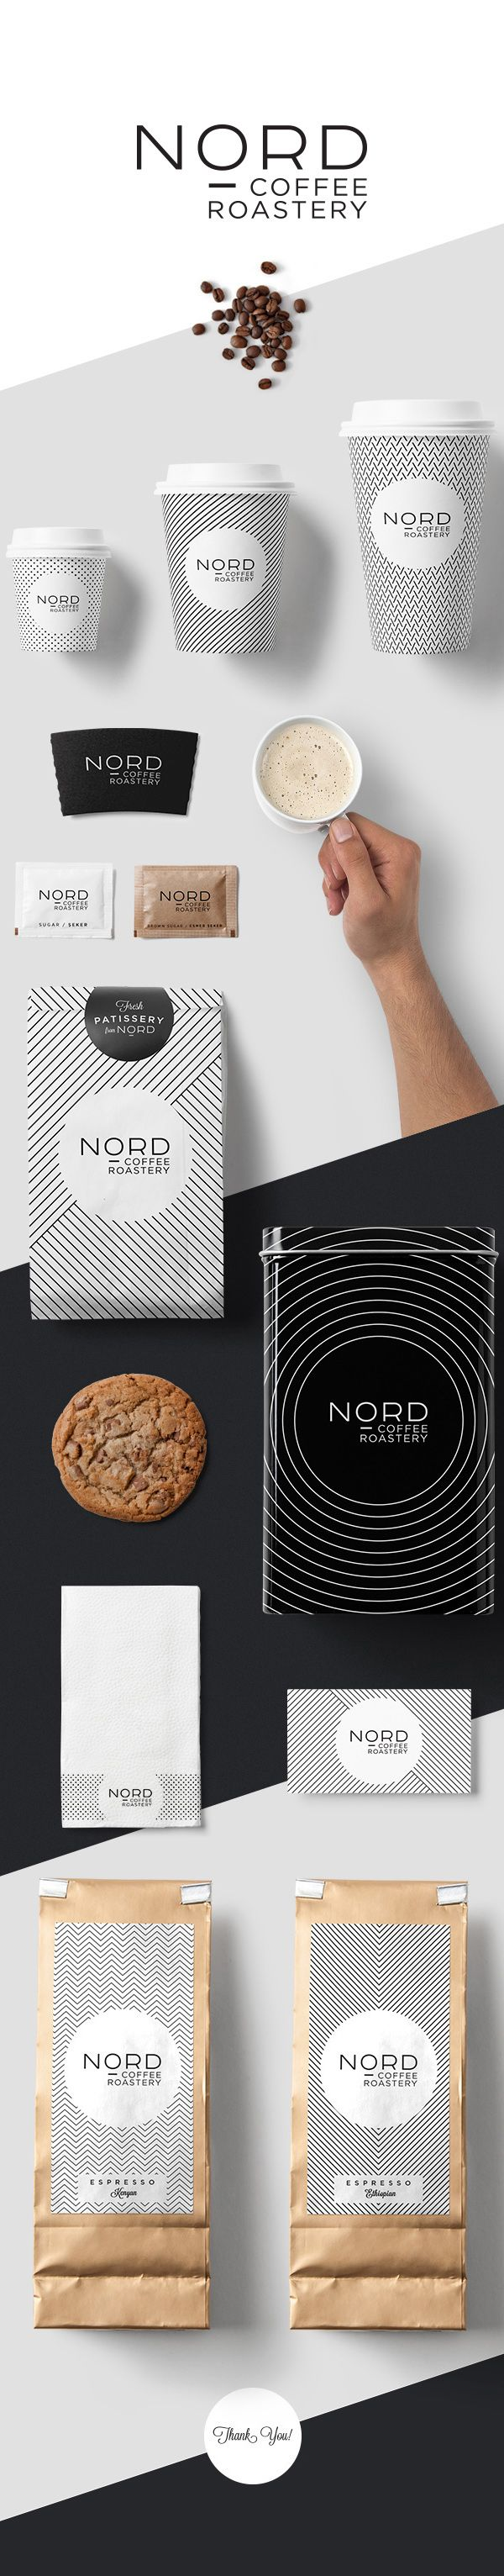 NORD Coffee Roastery by Kutan URAL